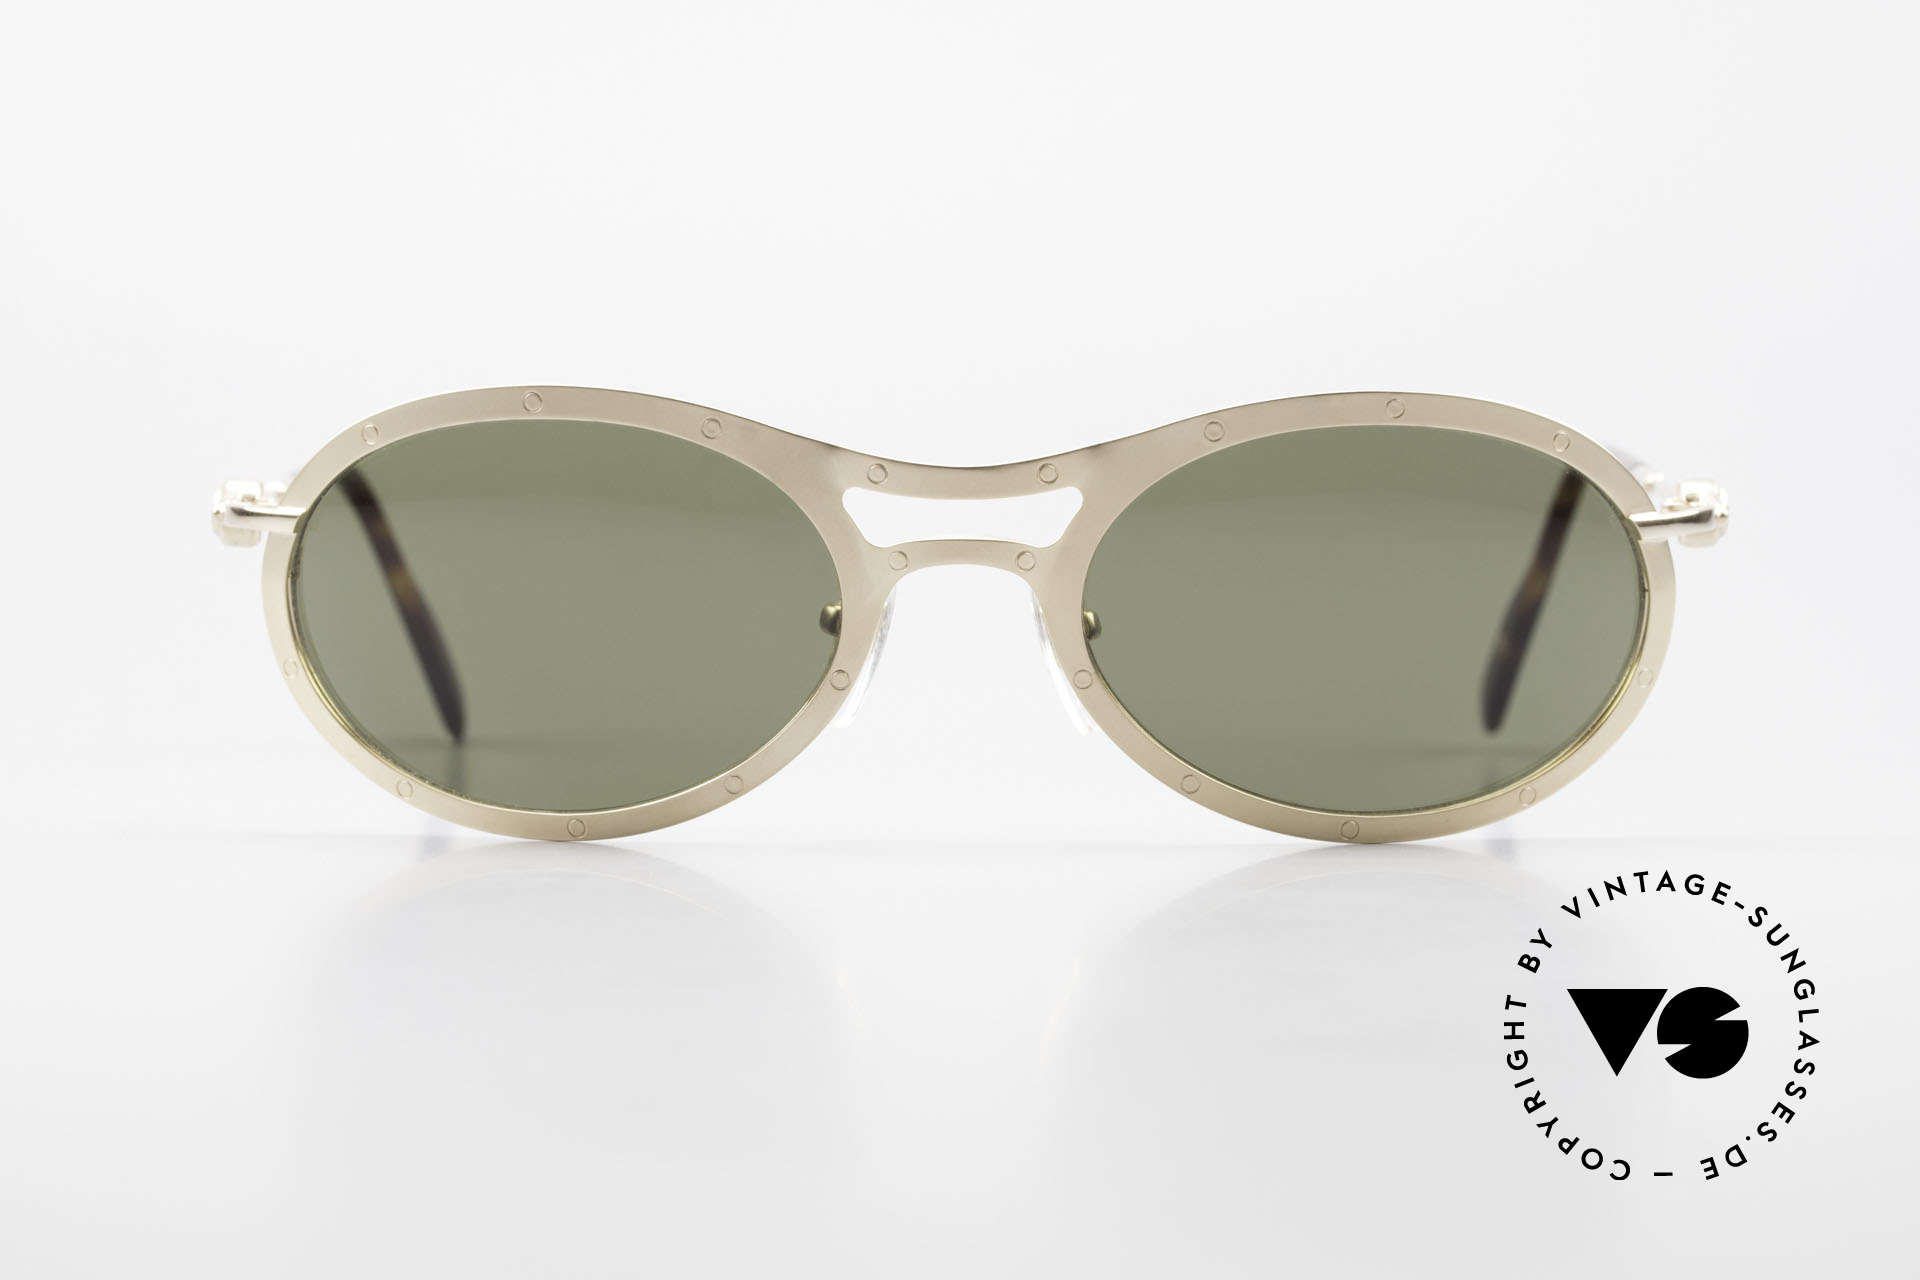 Aston Martin AM33 Sporty Luxury Sunglasses 90's, accessory for the luxury British sports cars; just noble!, Made for Men